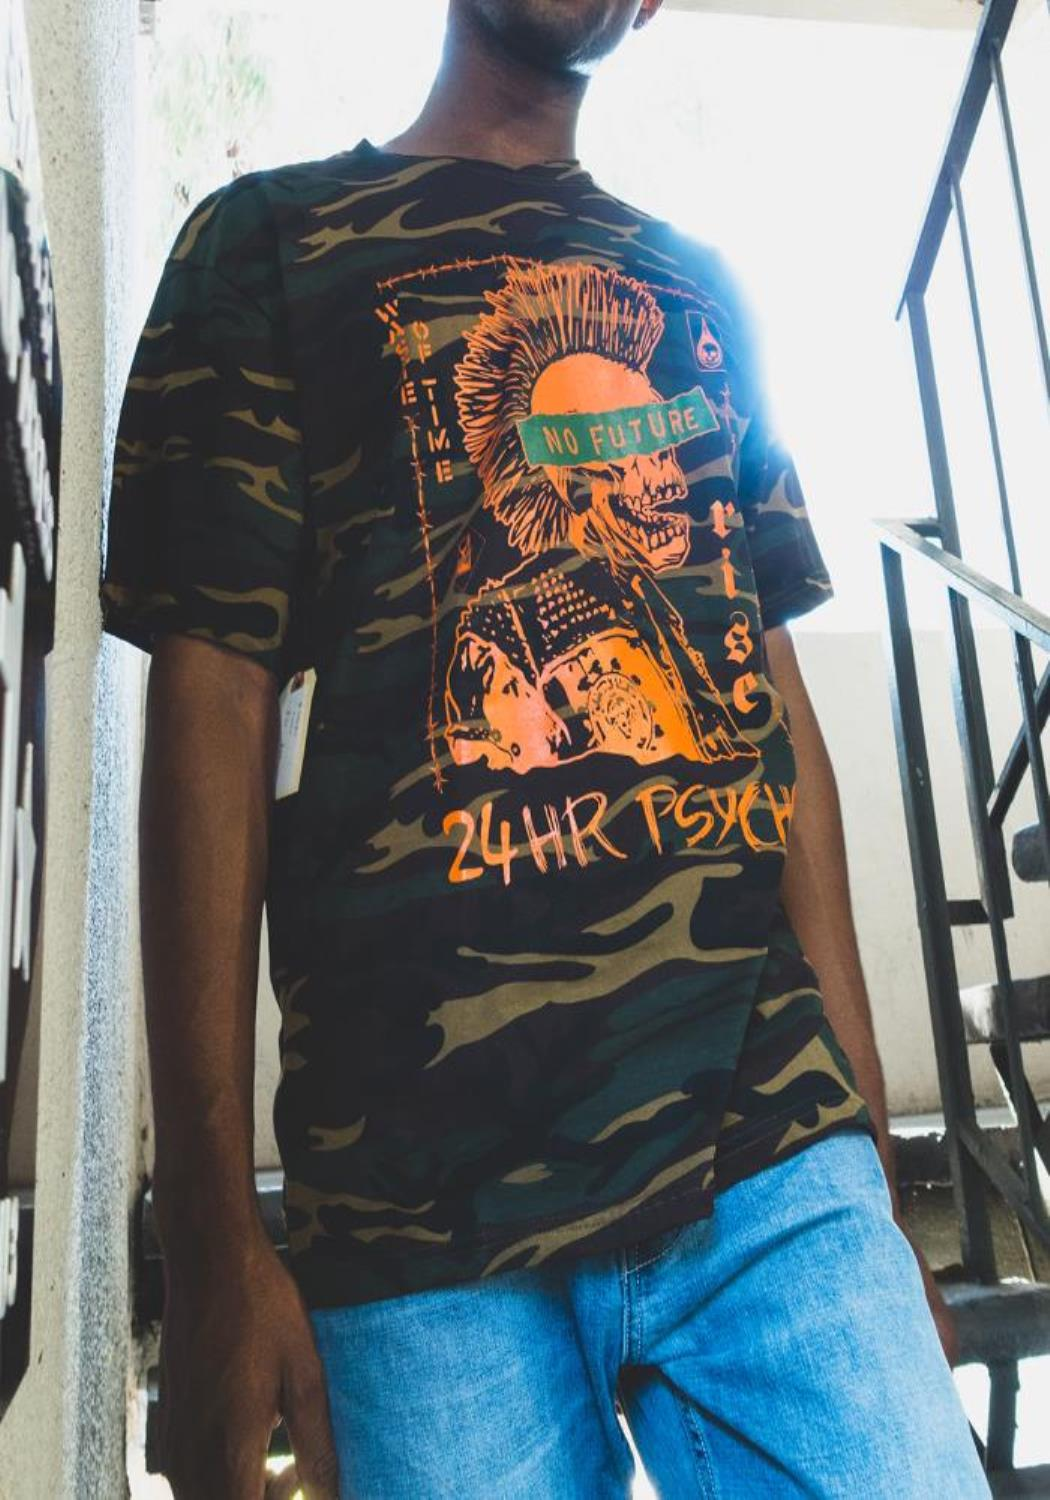 Blank State 24HR Psycho Tee